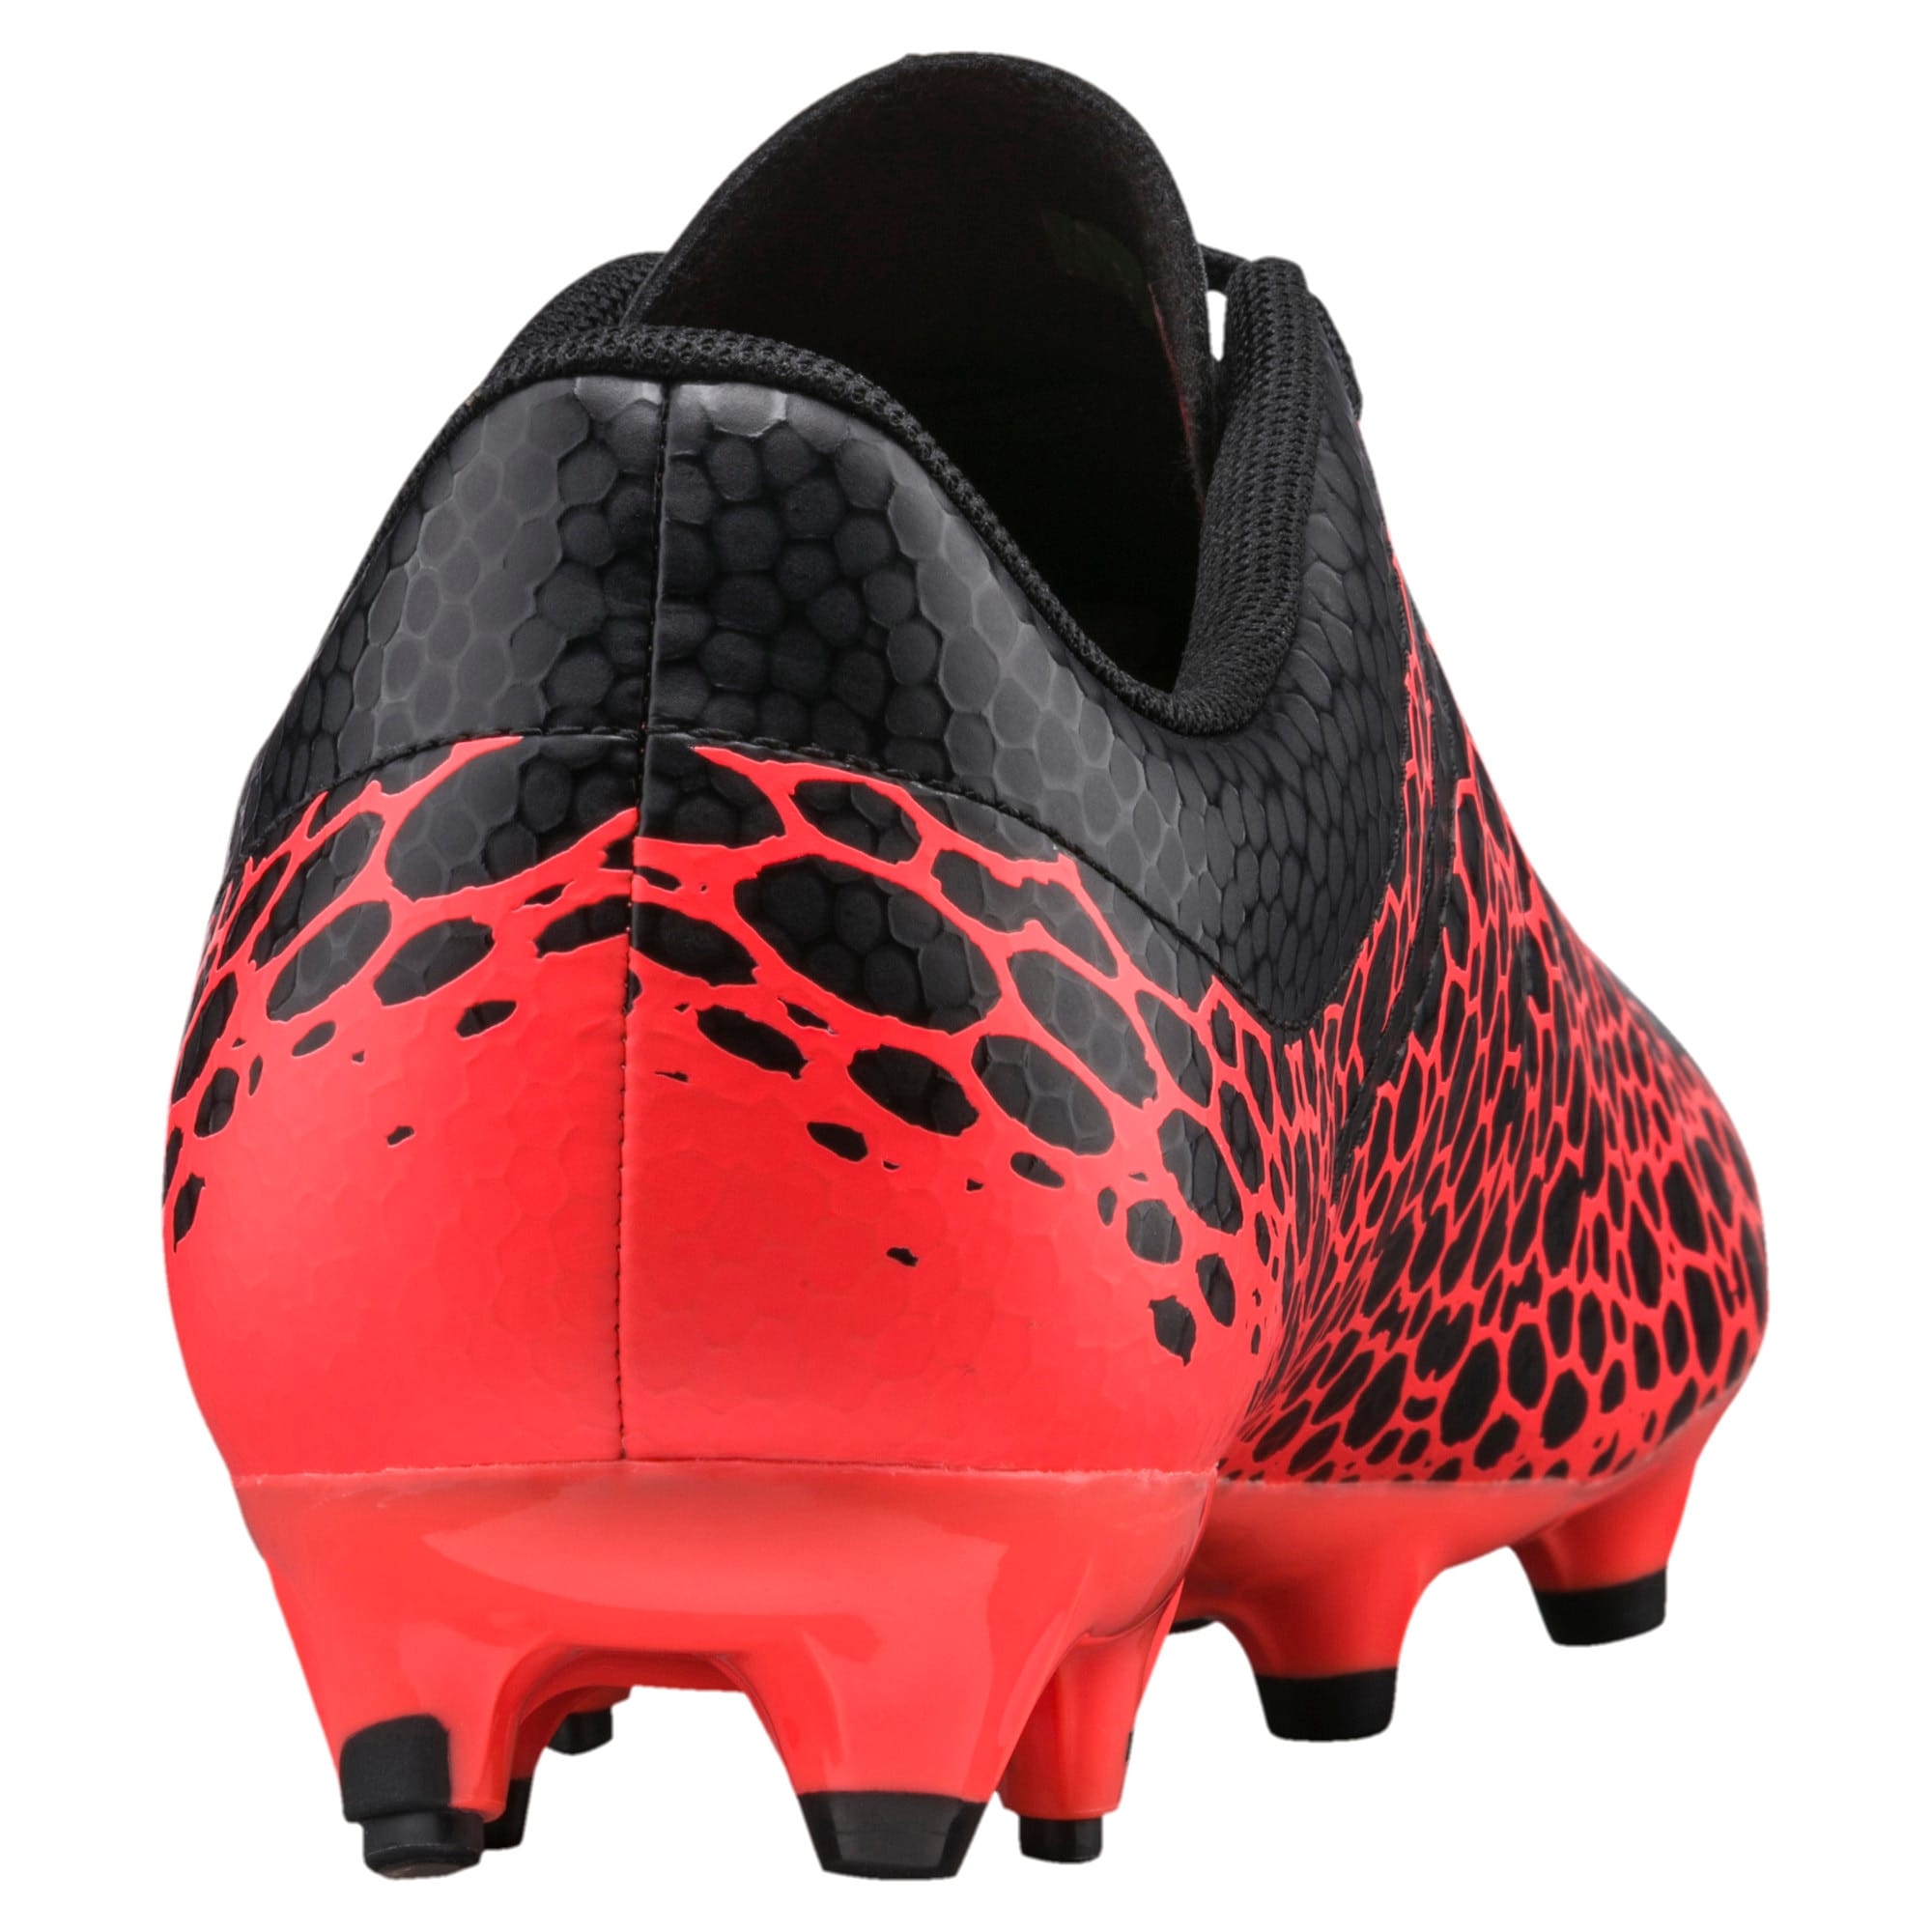 Thumbnail 3 of evoPOWER Vigor 4 Graphic FG Men's Football Boots, Black-Silver-Fiery Coral, medium-IND